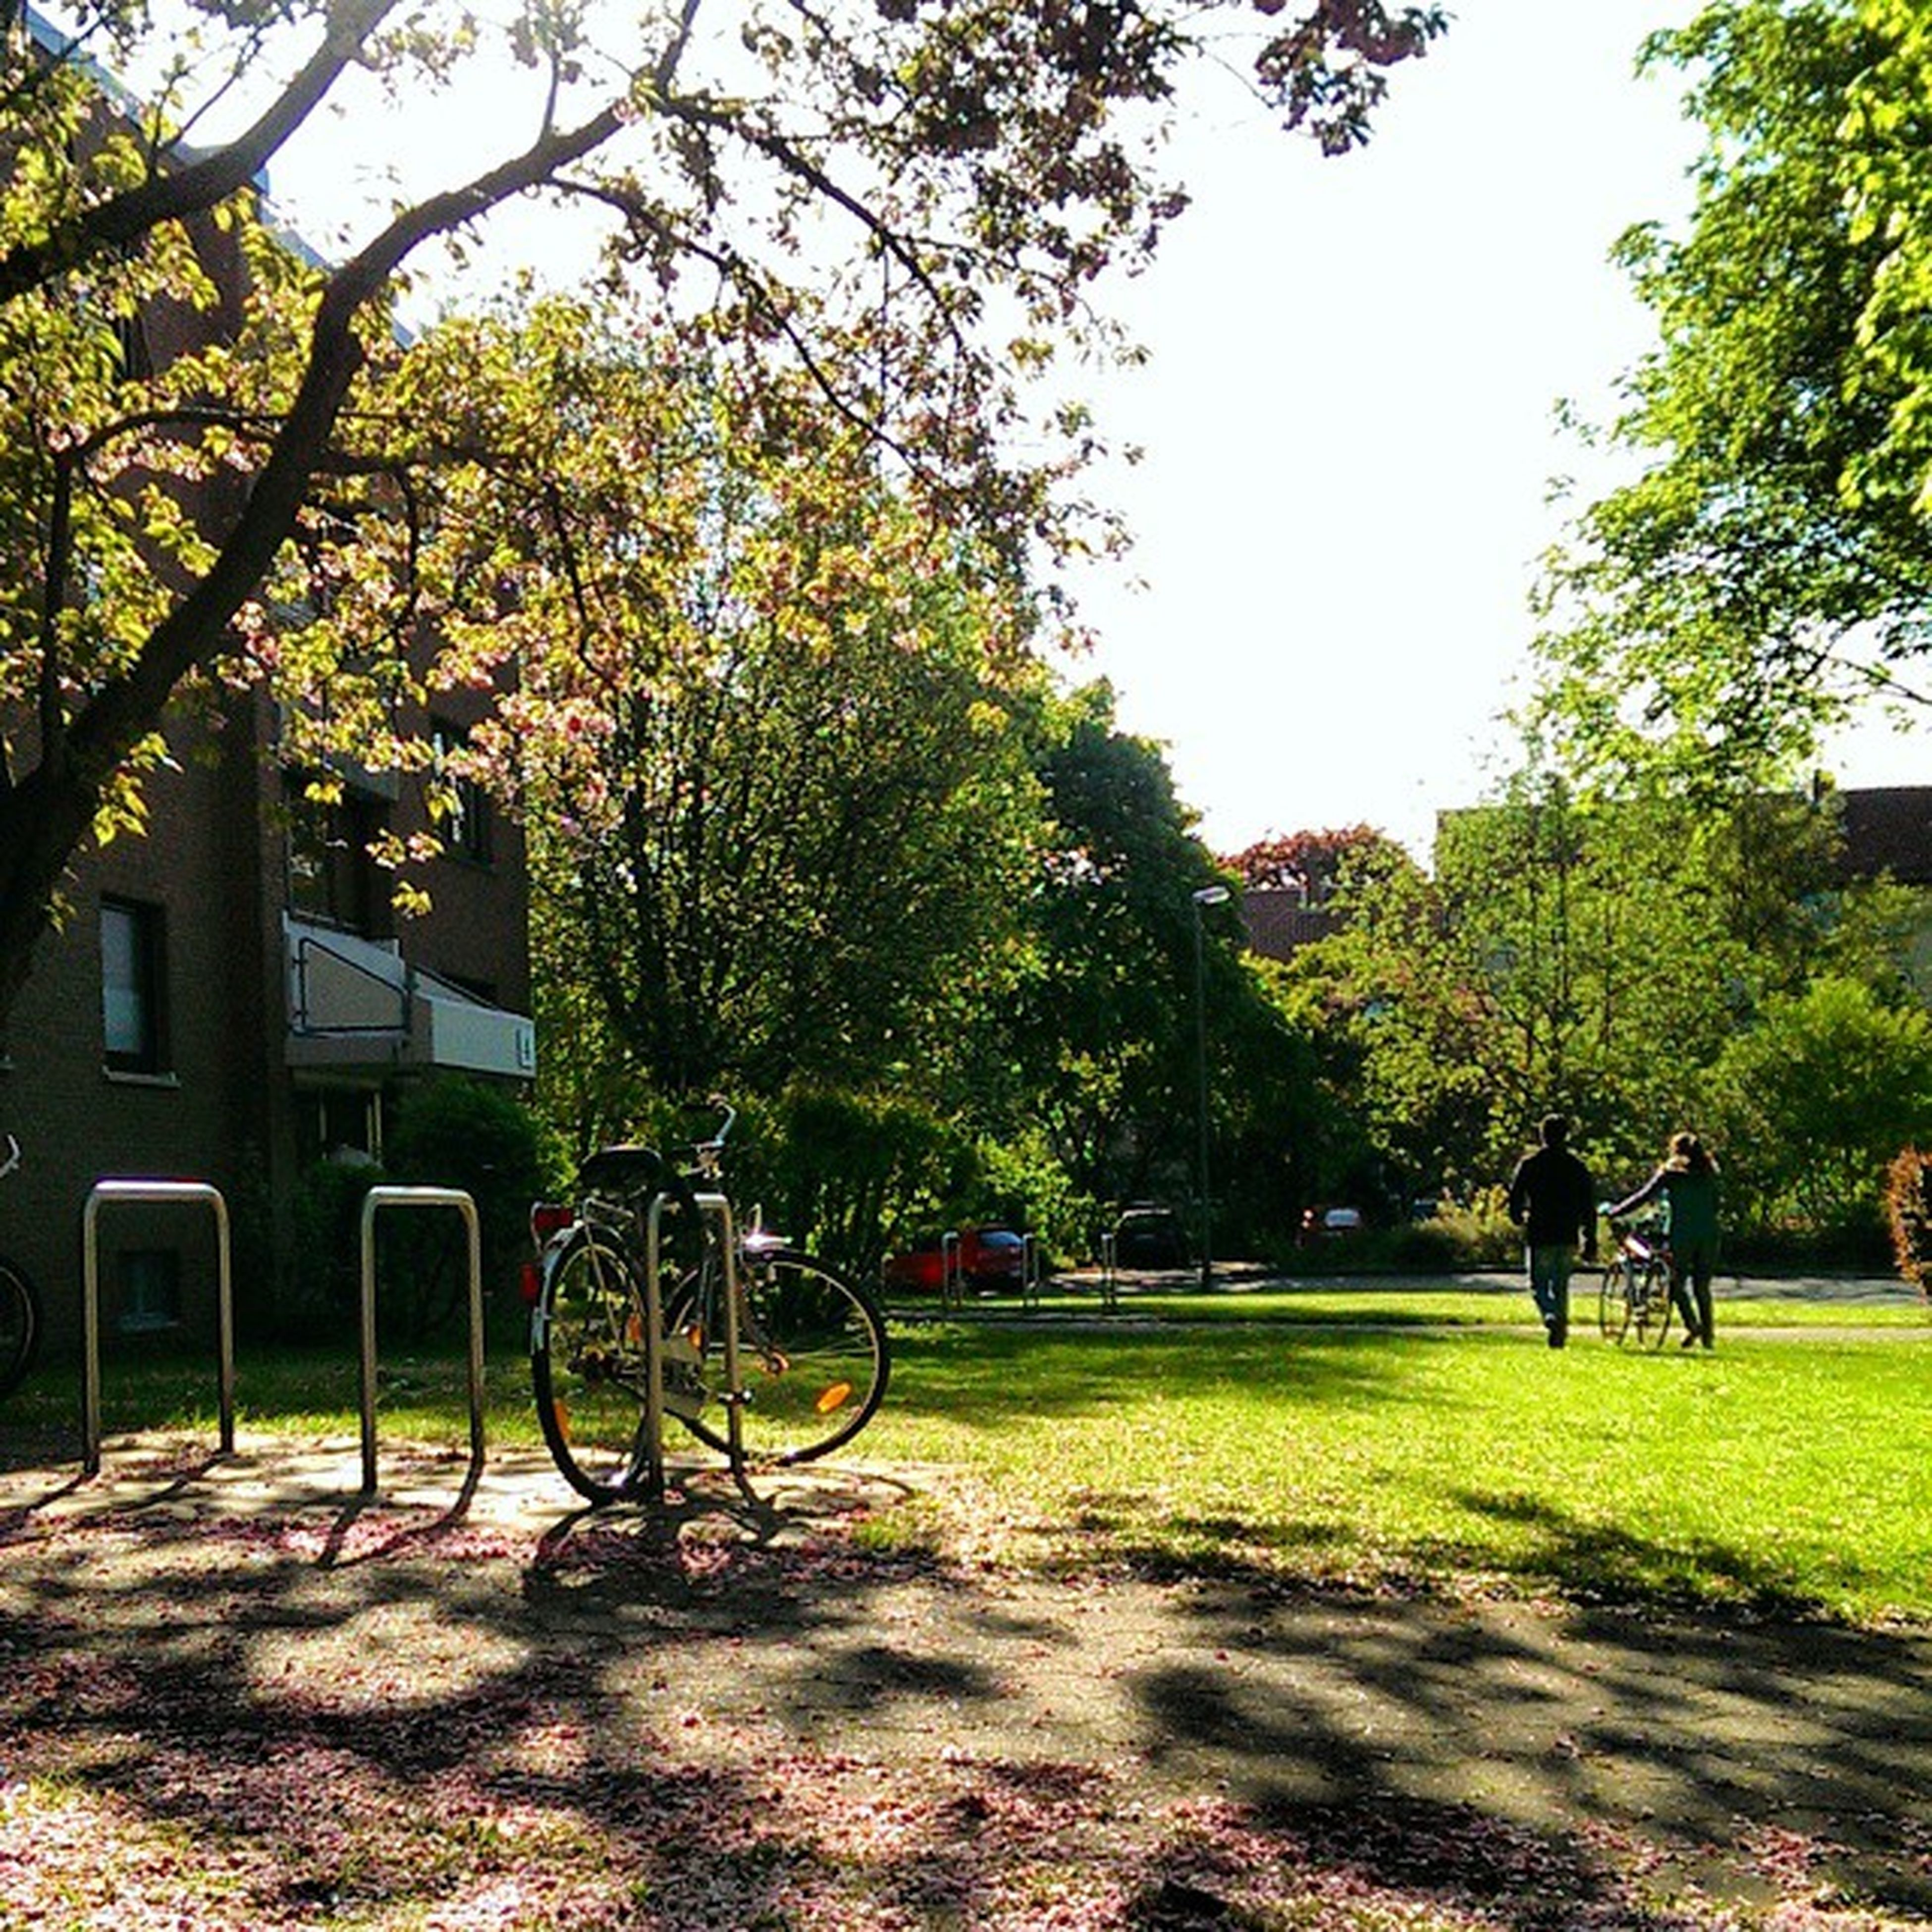 tree, grass, park - man made space, green color, park, bicycle, sunlight, growth, shadow, men, building exterior, nature, incidental people, bench, leisure activity, lawn, footpath, built structure, outdoors